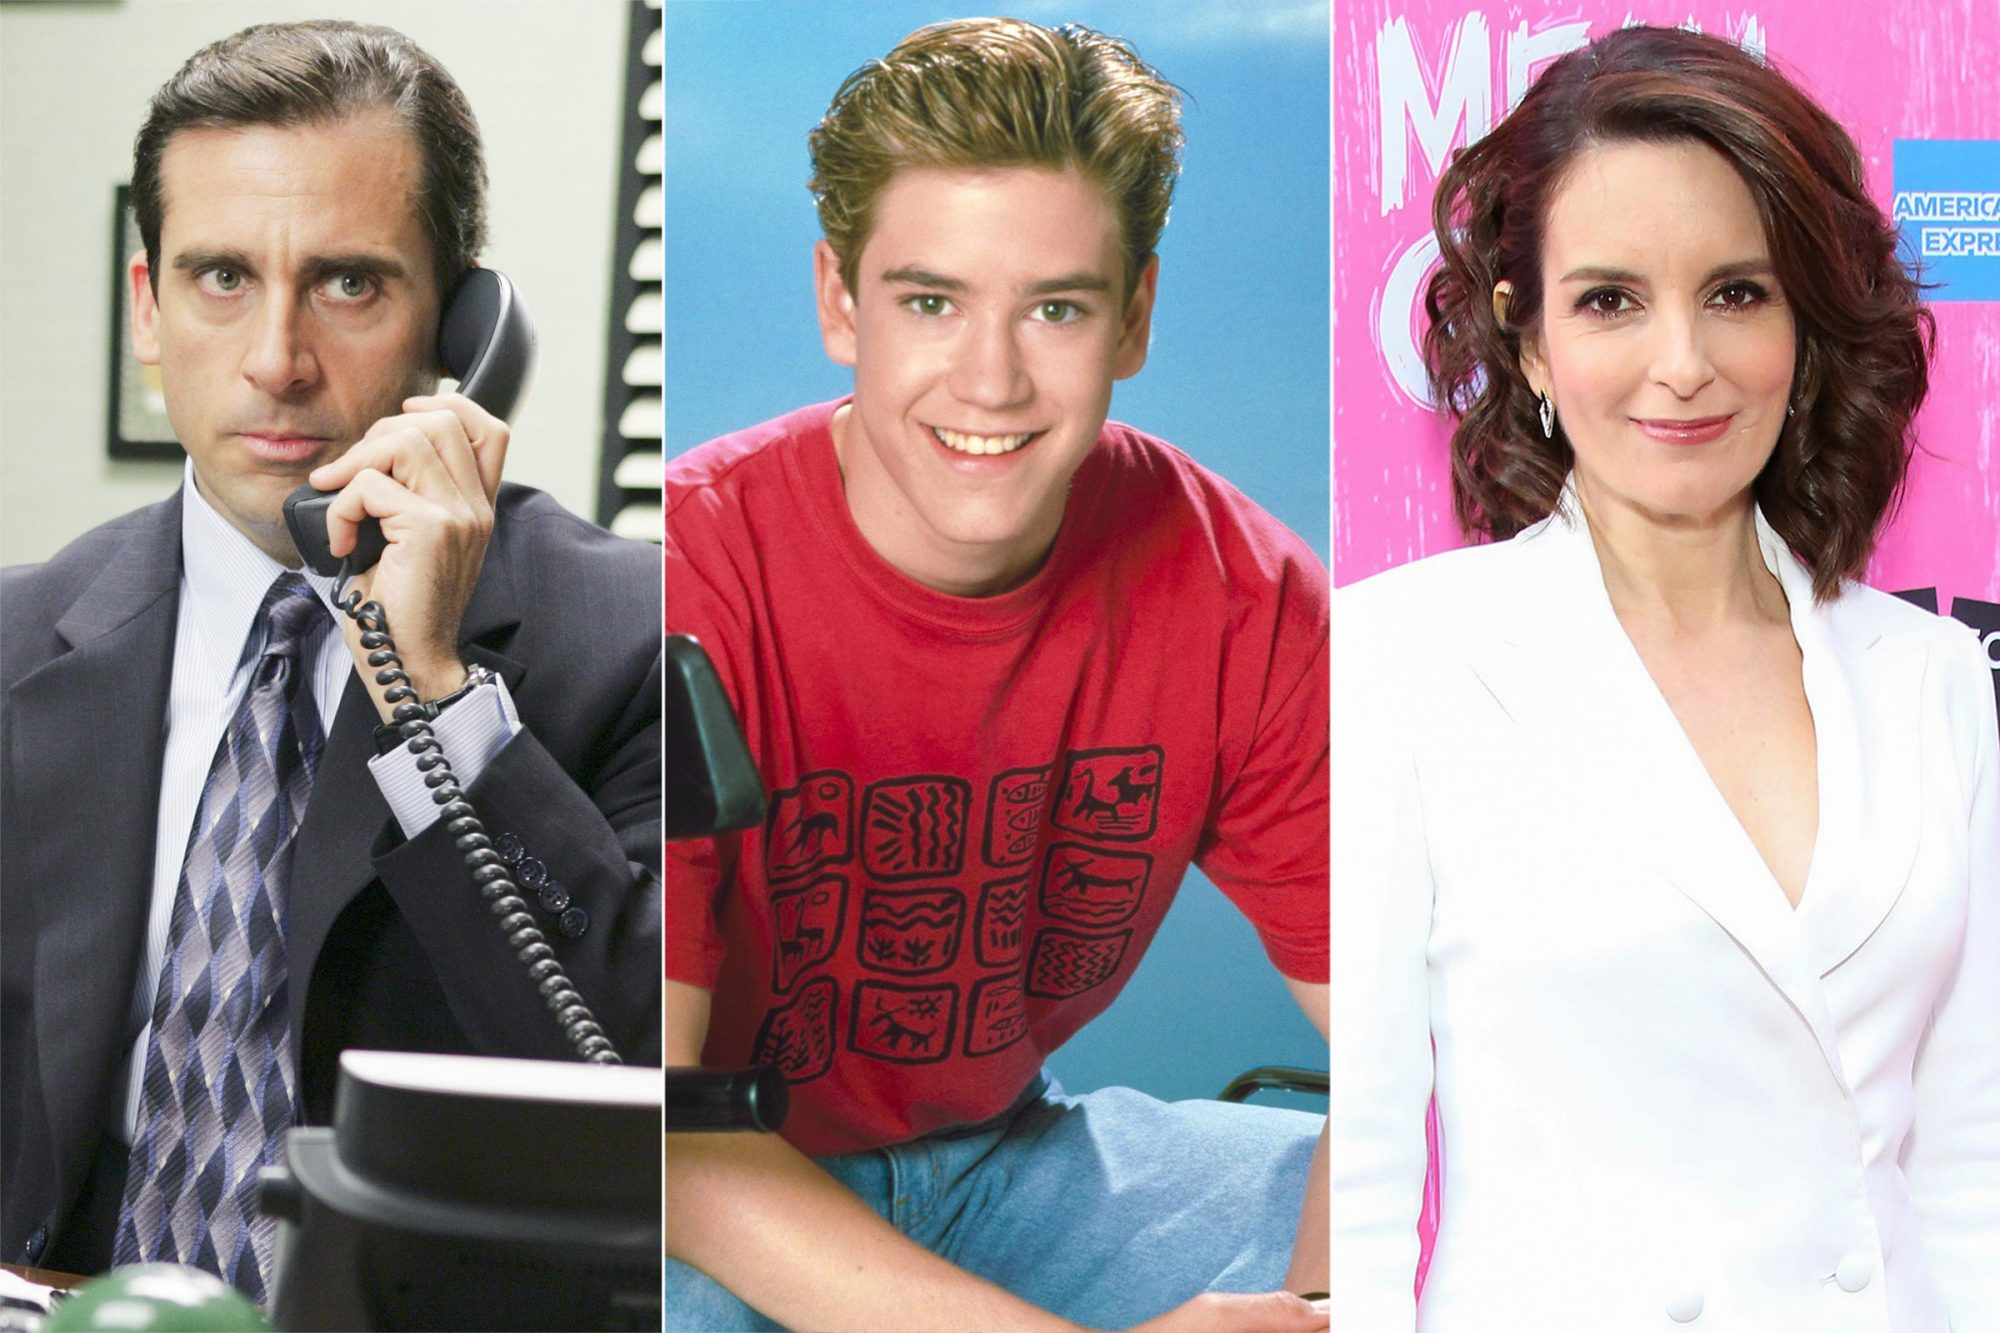 The Office / Saved By The Bell / Tina Fey